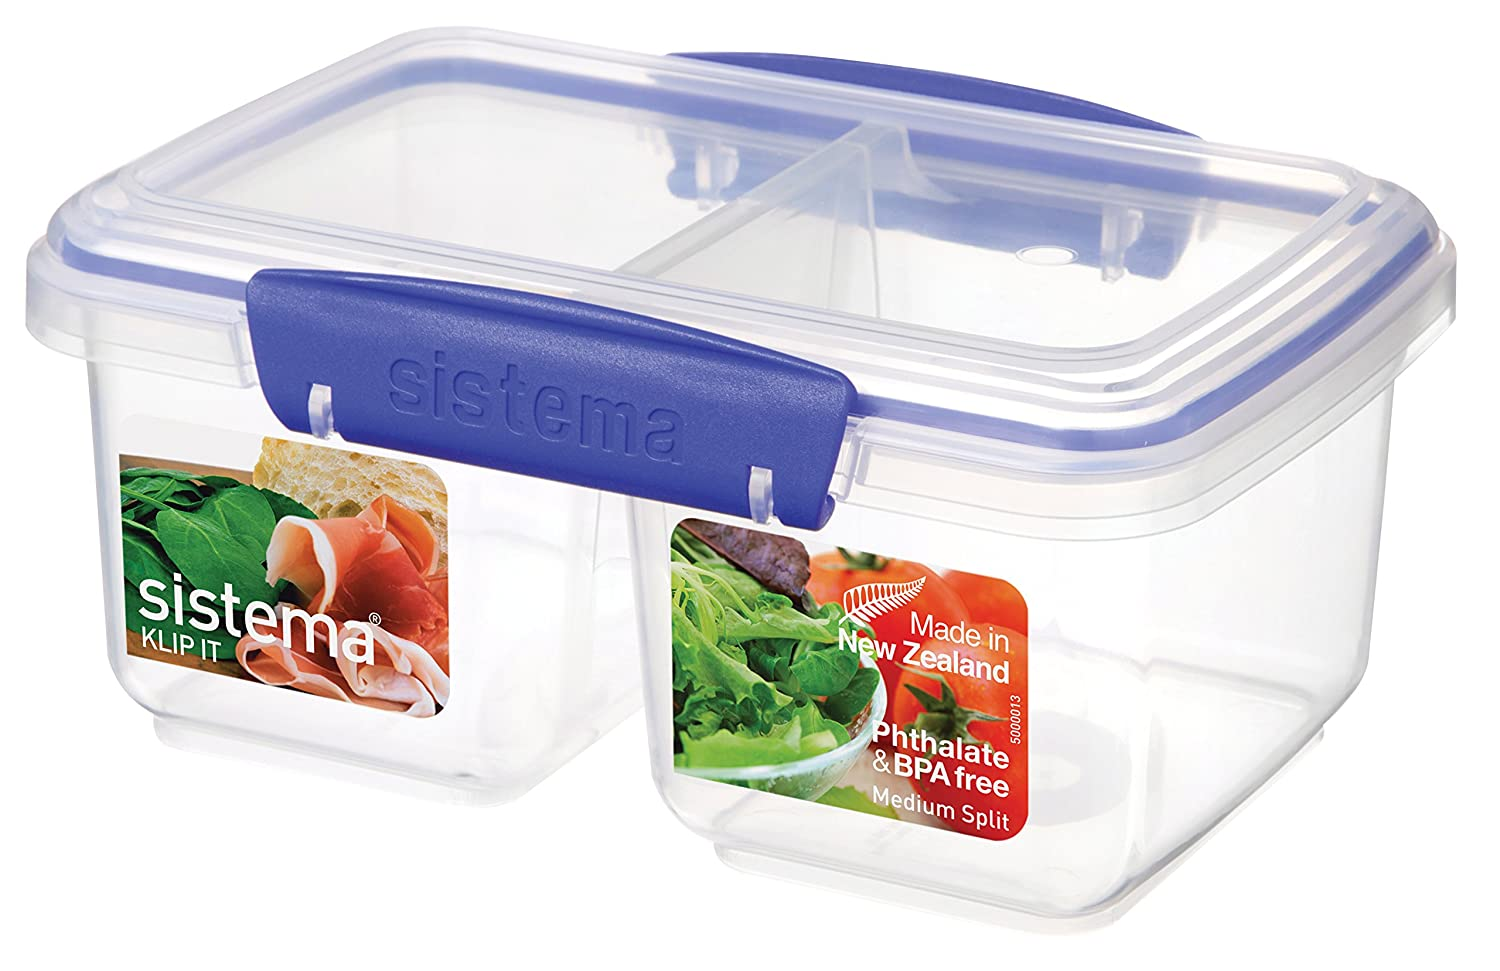 Sistema KLIP IT Rectangular Collection Split Food Storage Container, Small, 11.8 oz./0.3 L, Clear/Blue, 3 Count 1513ZS